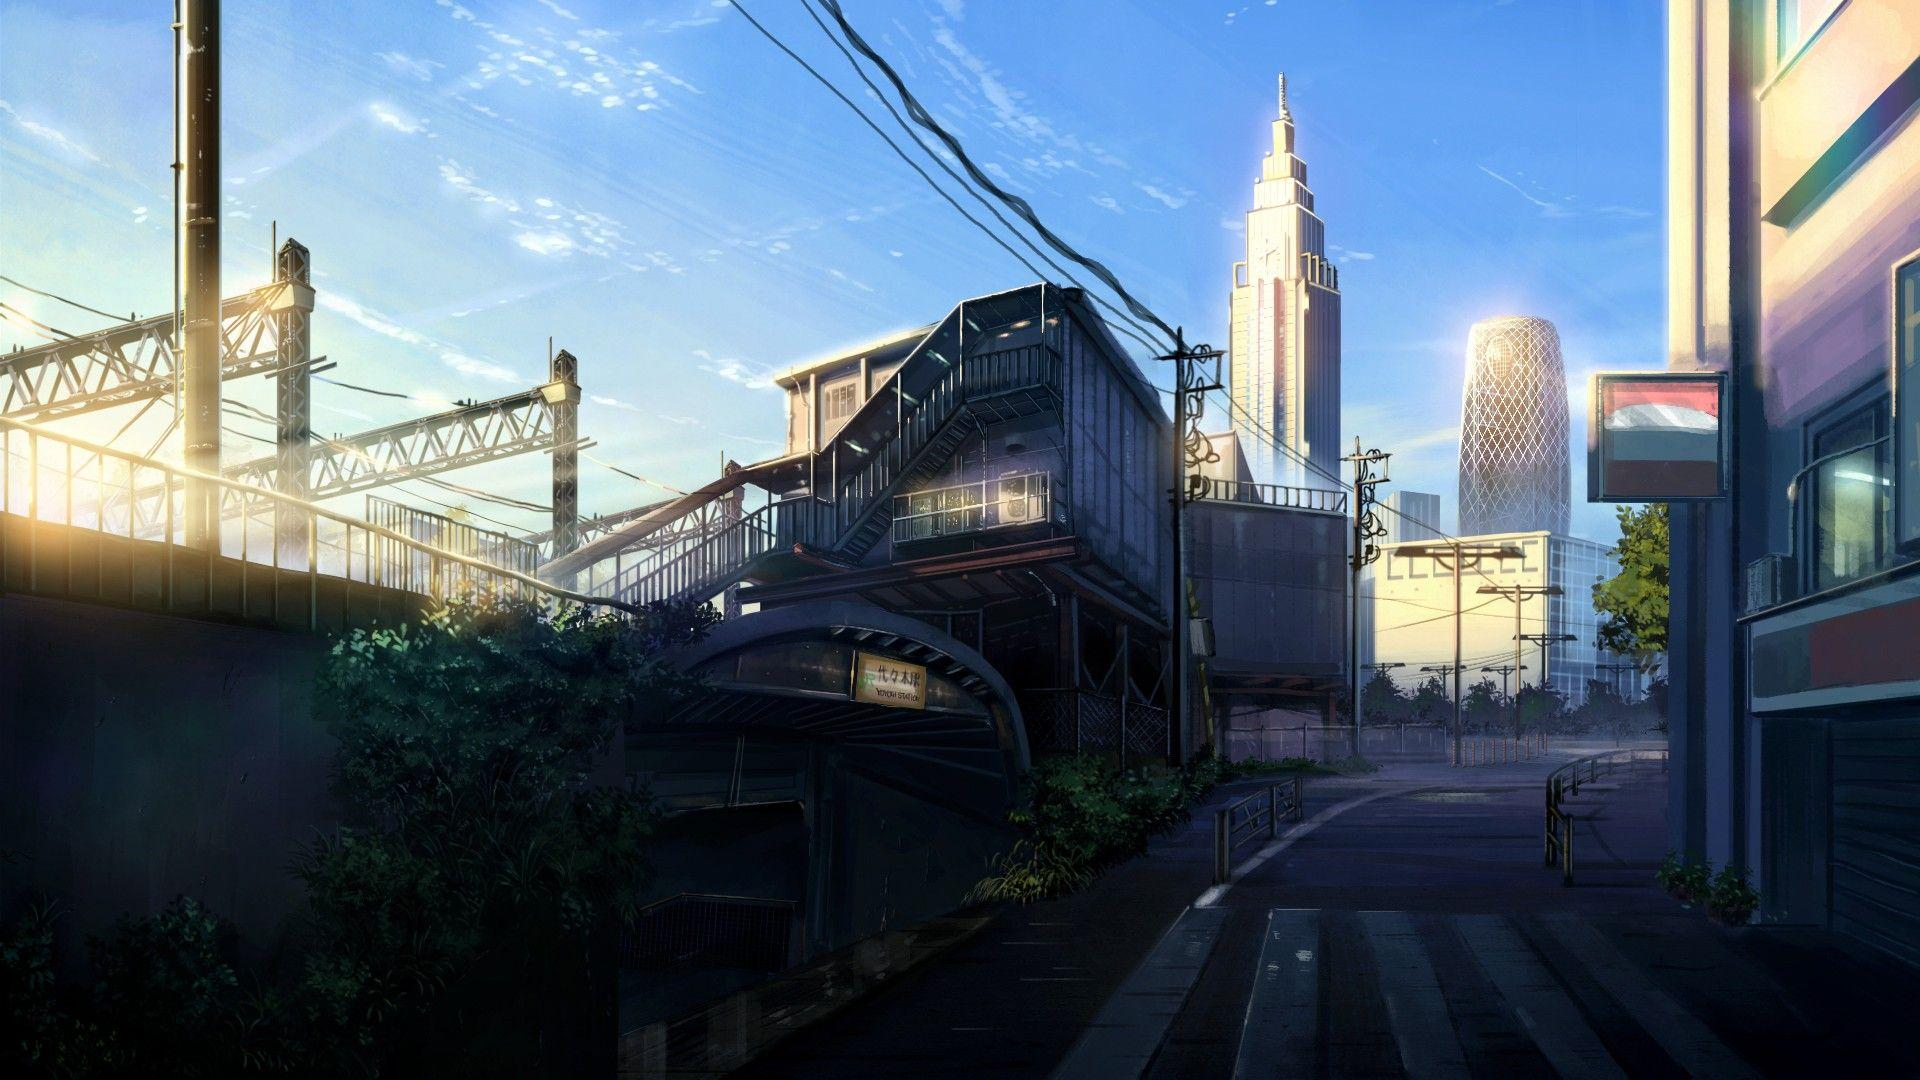 1080p Anime City Wallpapers - Wallpaper Cave